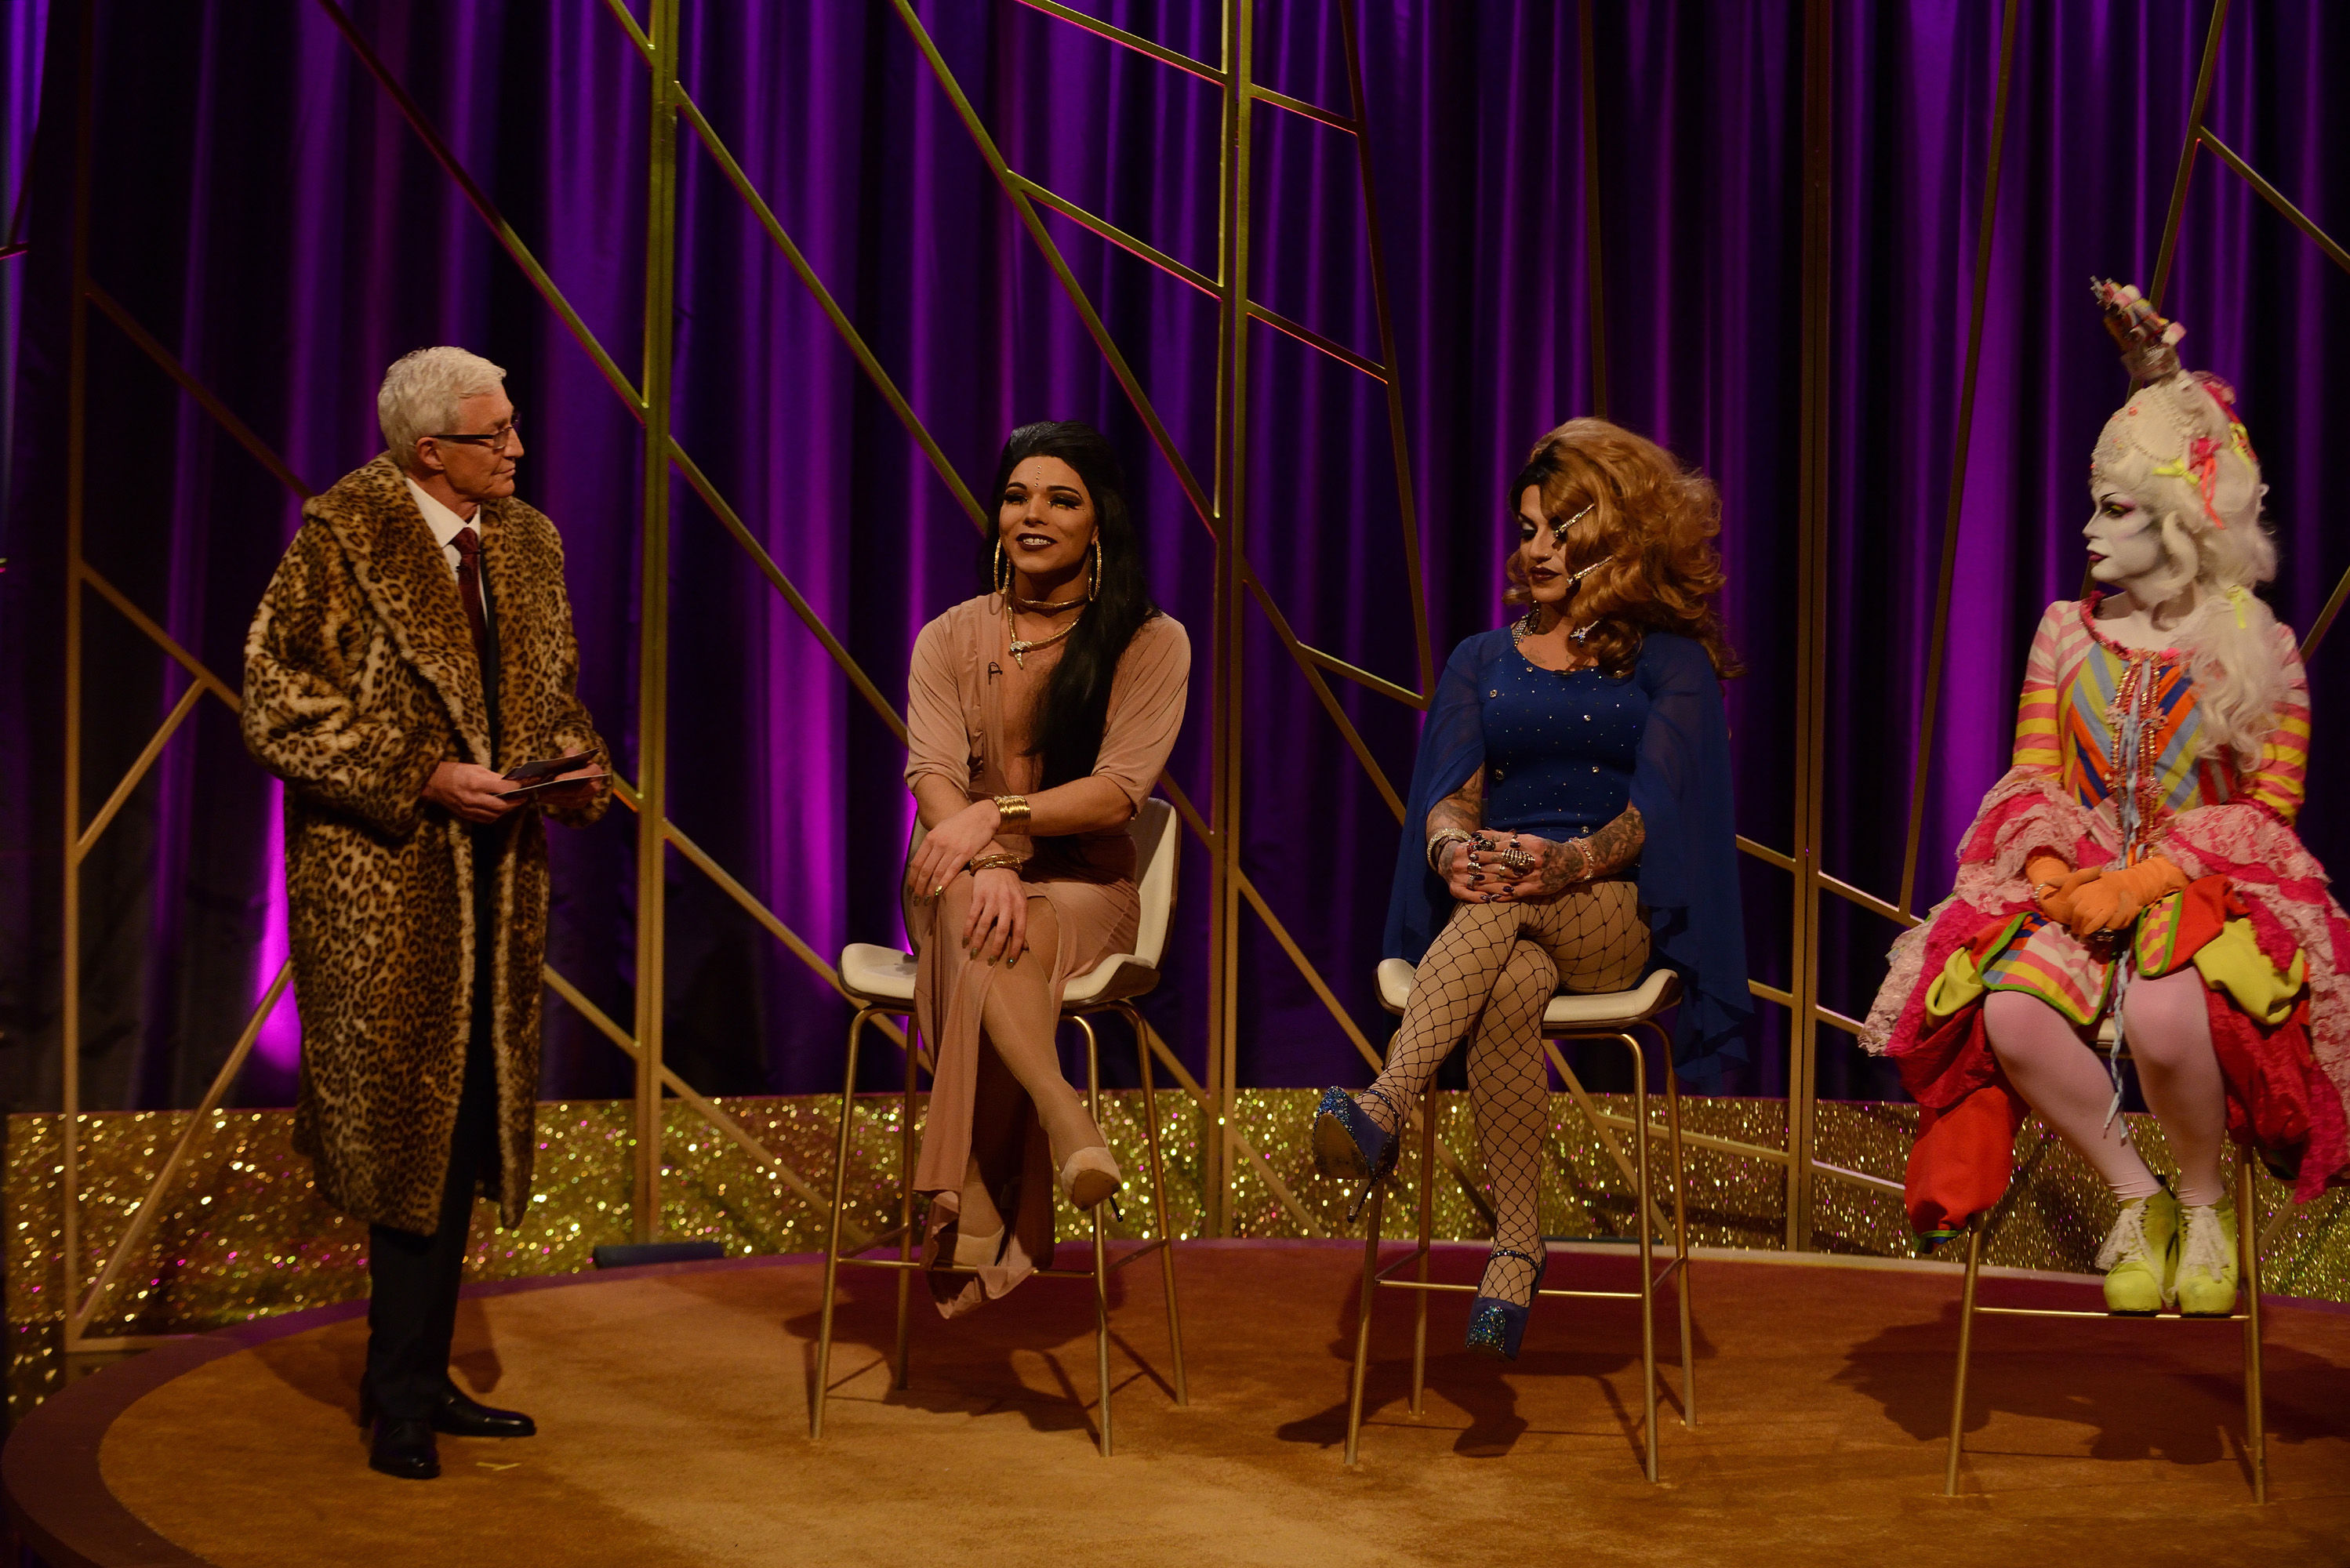 Blind Date to make history with first ever drag queen special